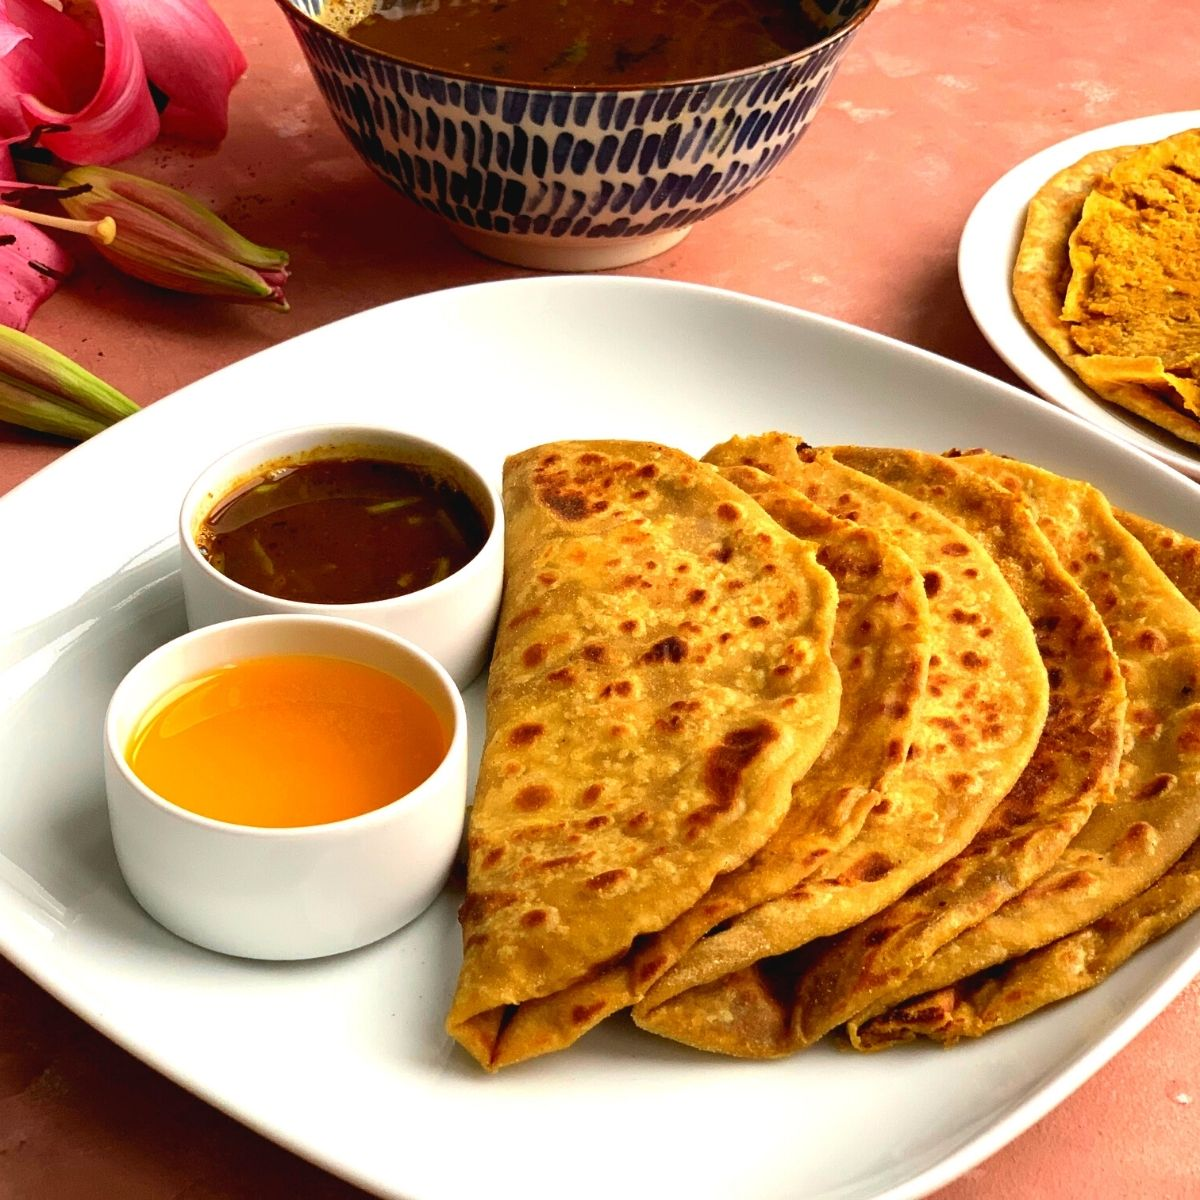 Puran Poli is a delicious sweet Lentils Flatbread from the state of Maharashtra made during special occasions like Holi, Gudi Padwa etc.